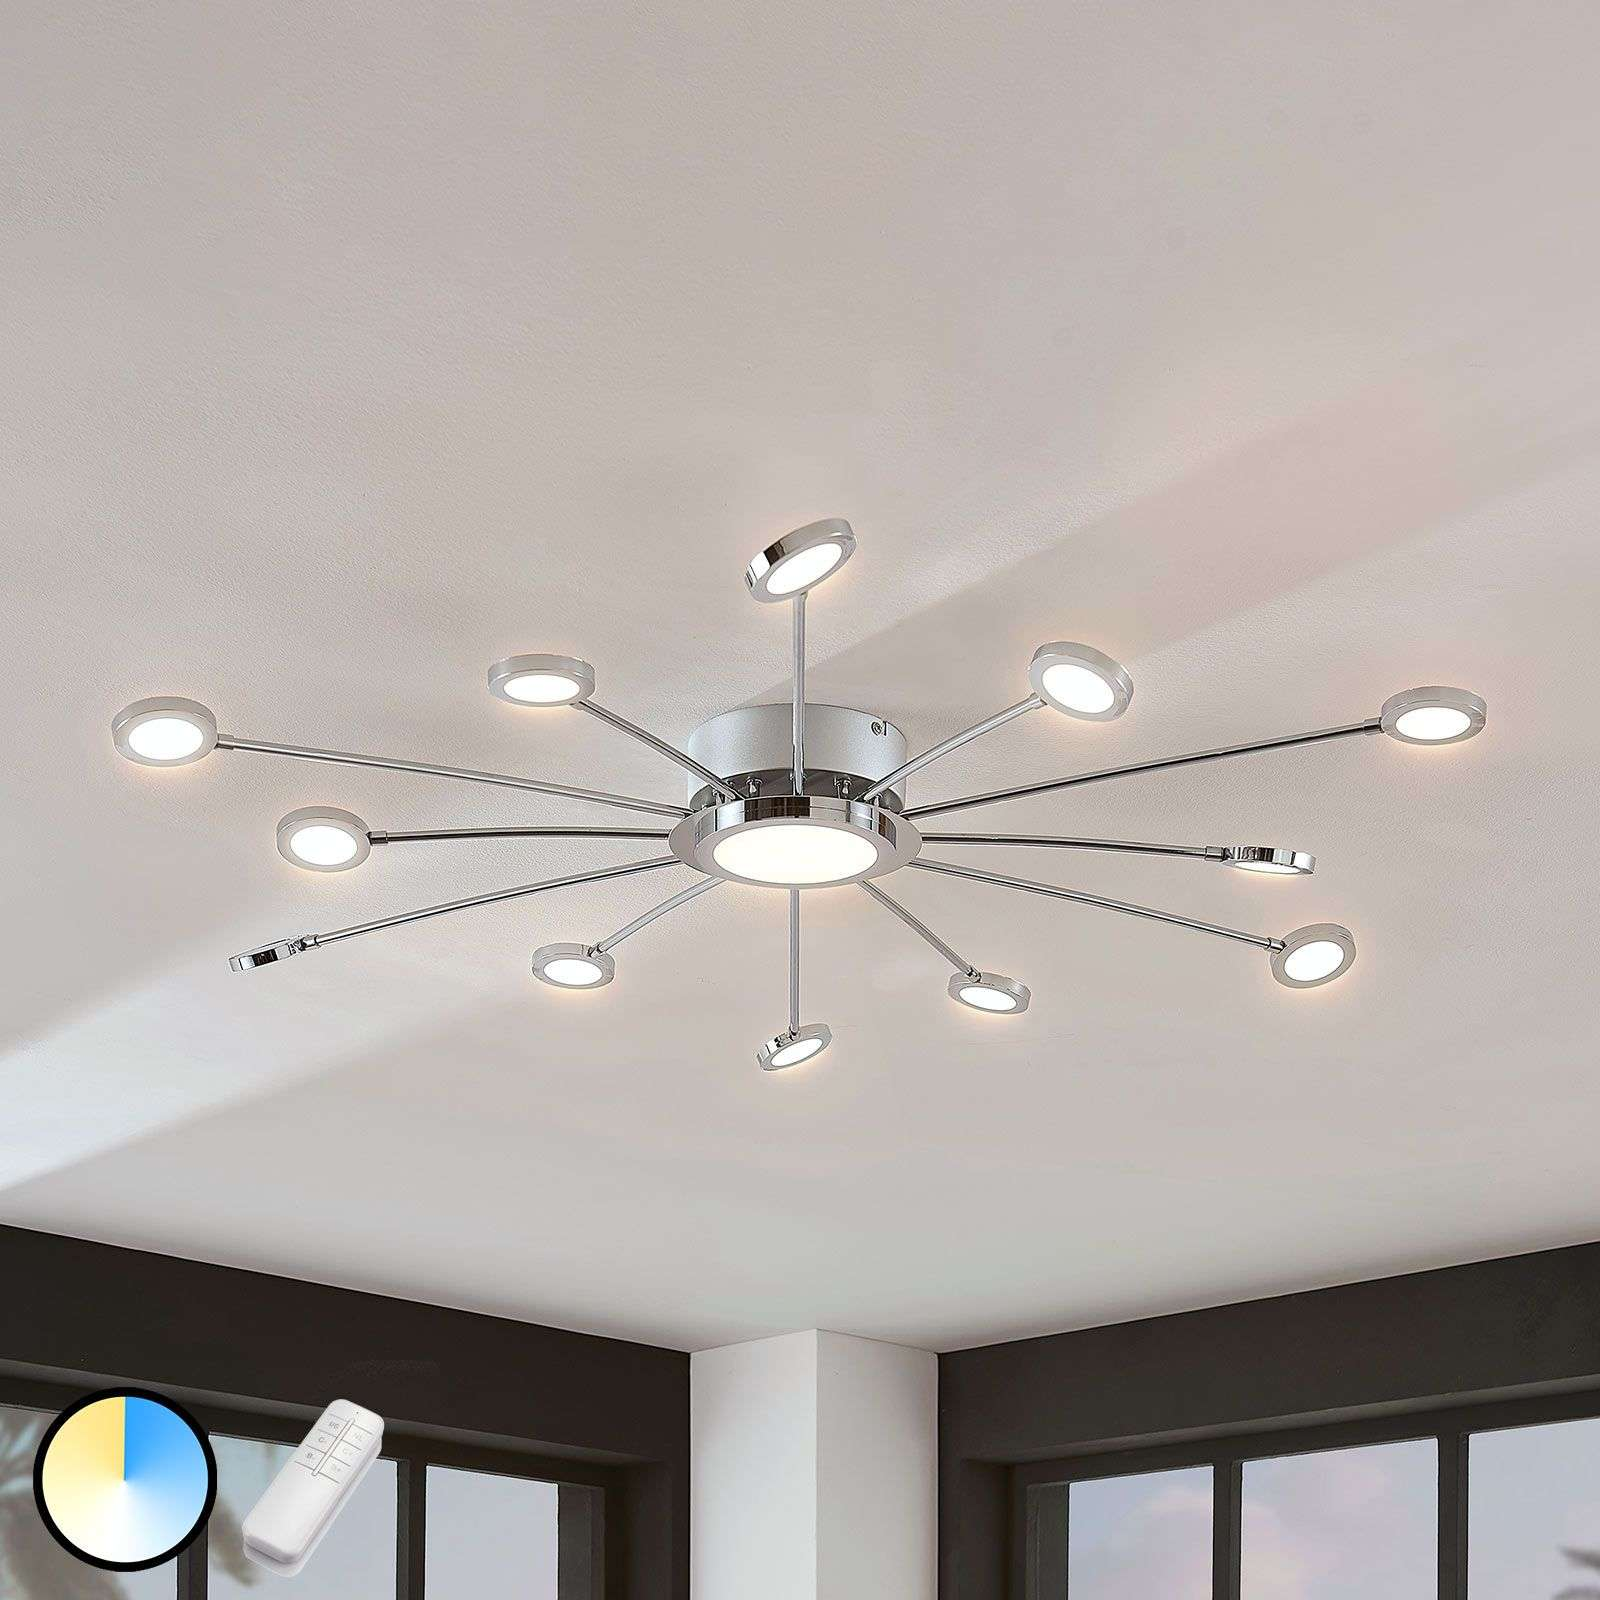 ceilings ceiling dimmable change color led lamp lights p control light remote